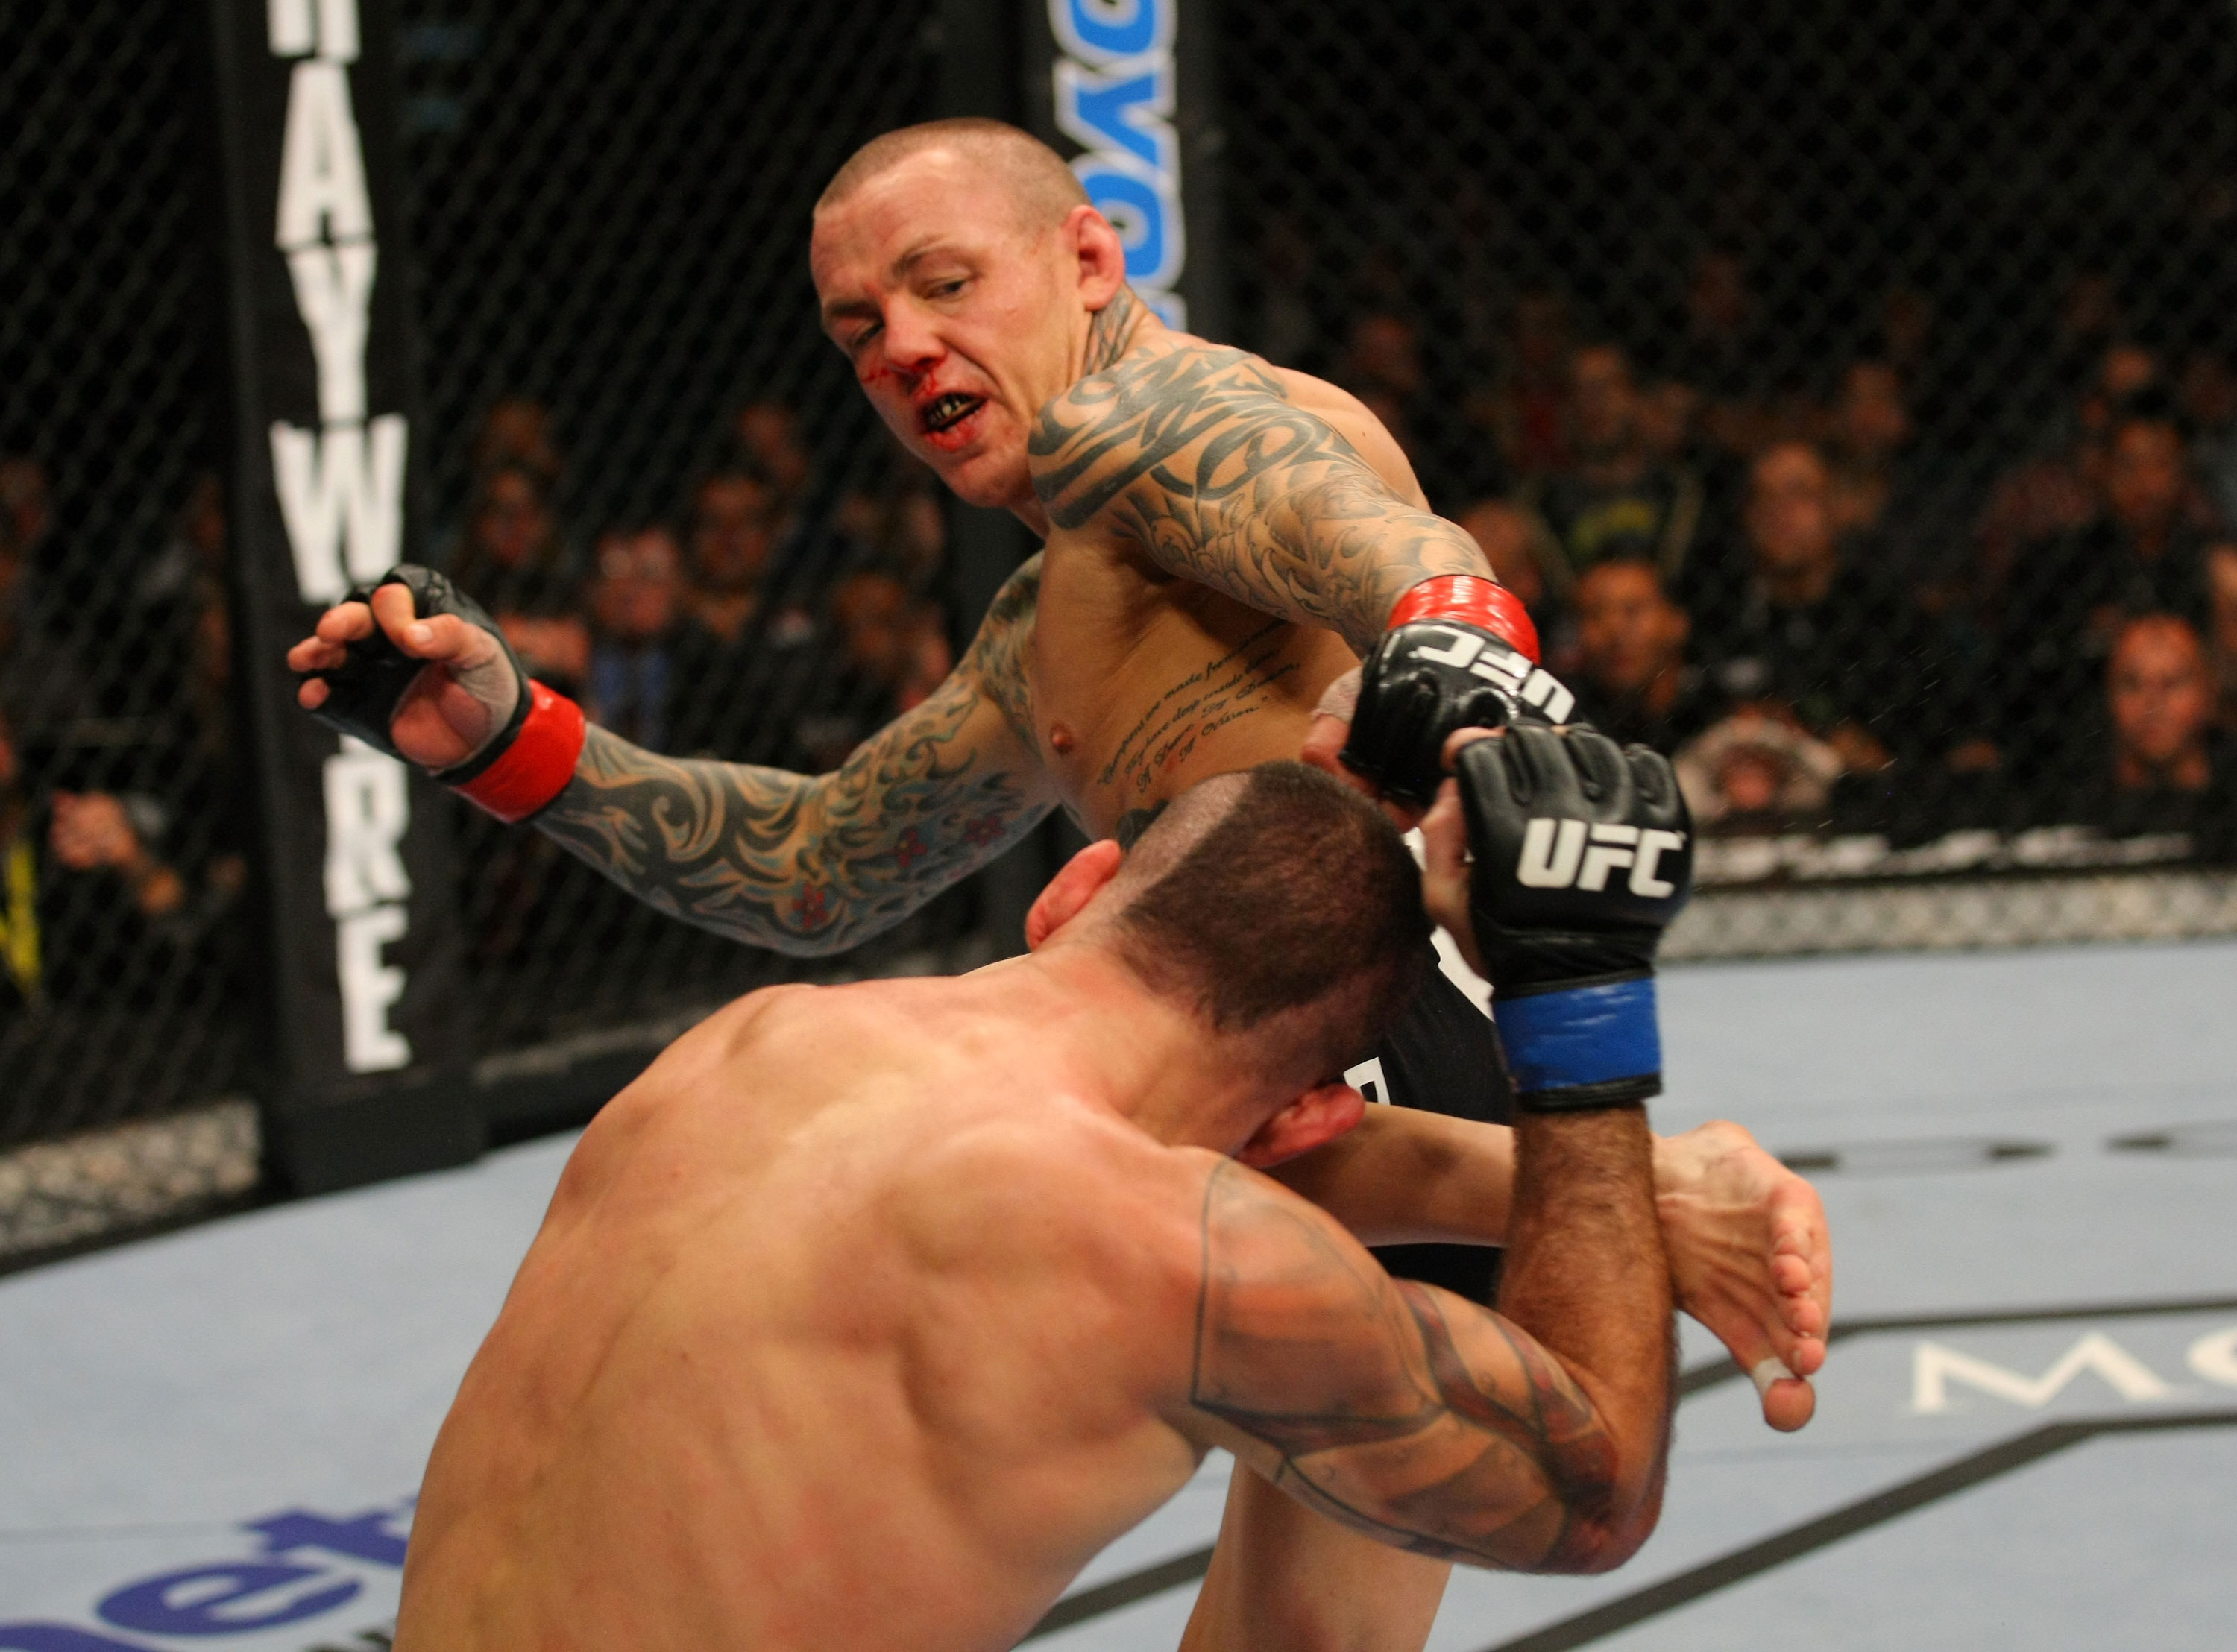 UFC featherweight Ross Pearson